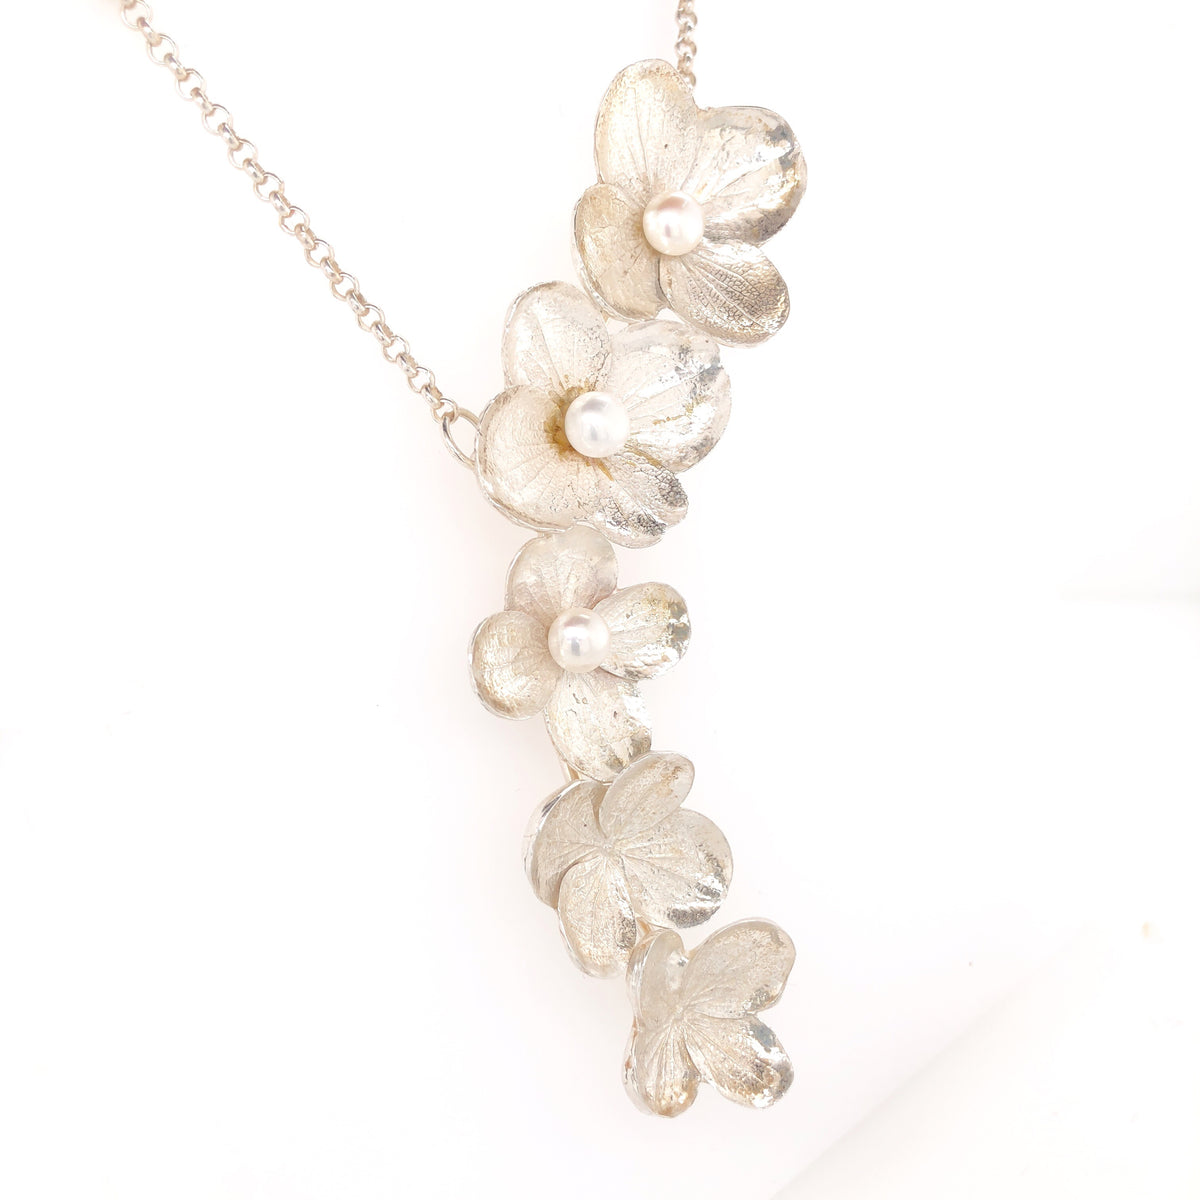 Hydrangea Cascade Necklace with White Pearls